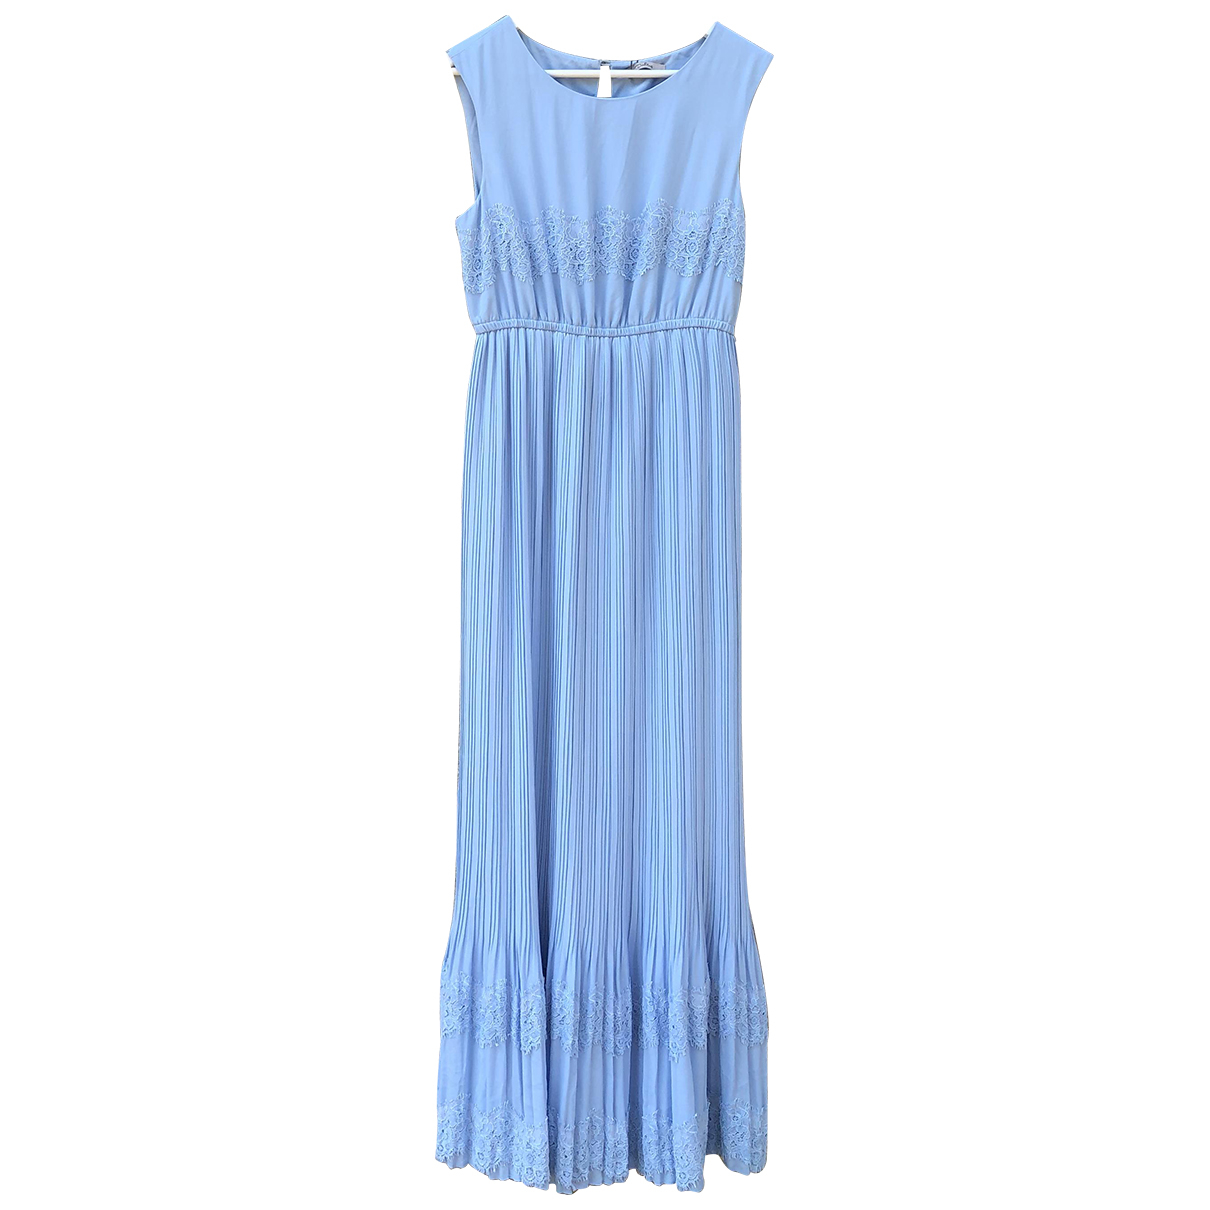 Darling - Robe   pour femme